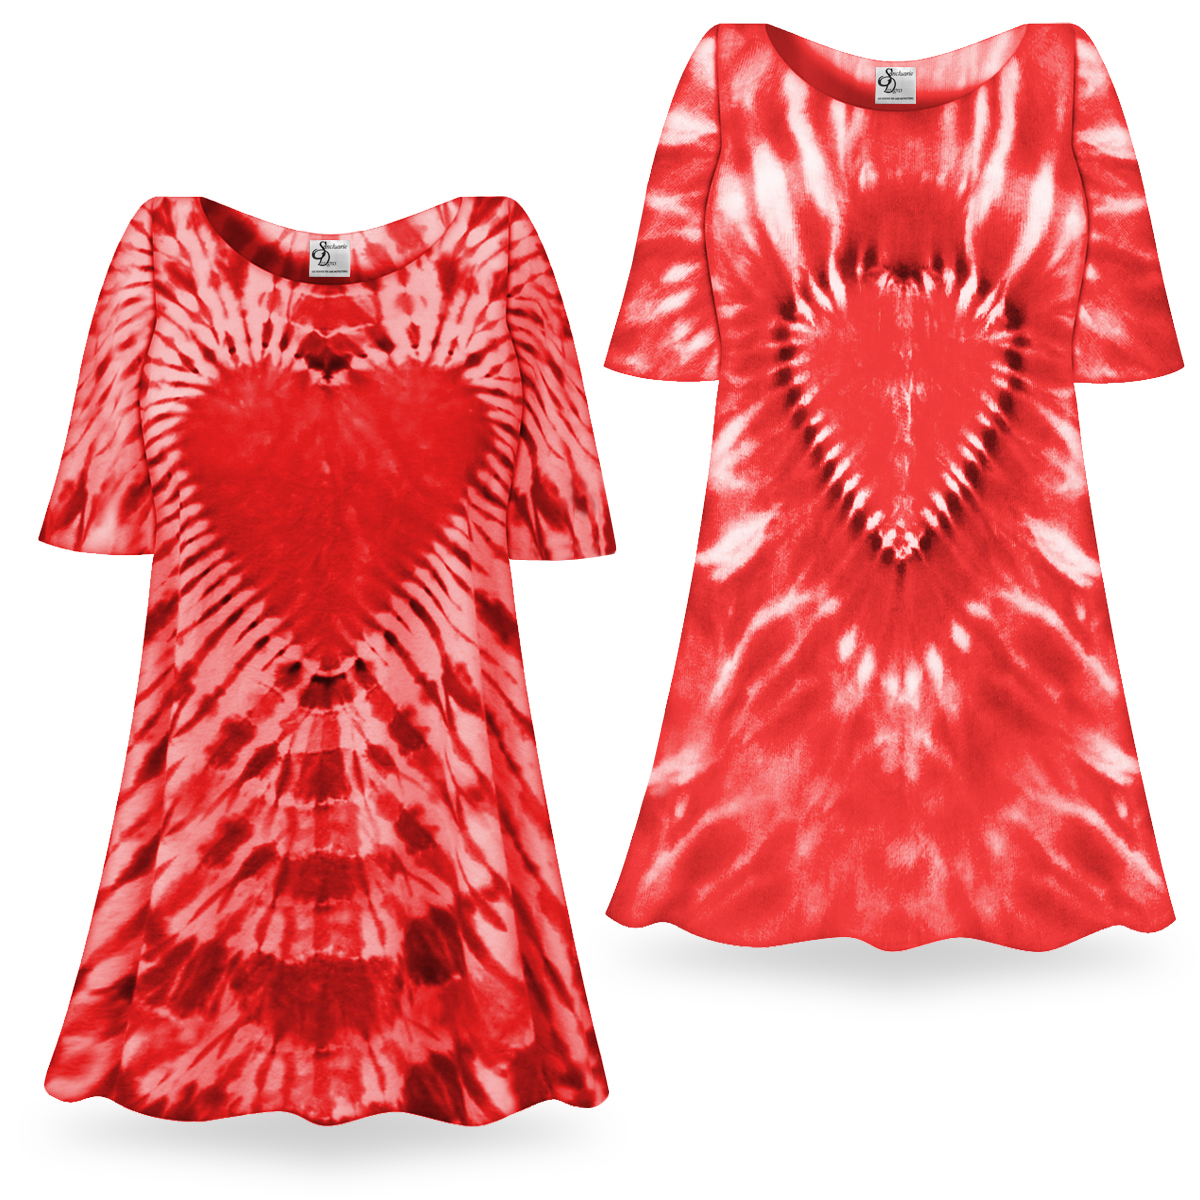 Sale Fiery Red Heart Tie Dye Supersize X Long Plus Size T